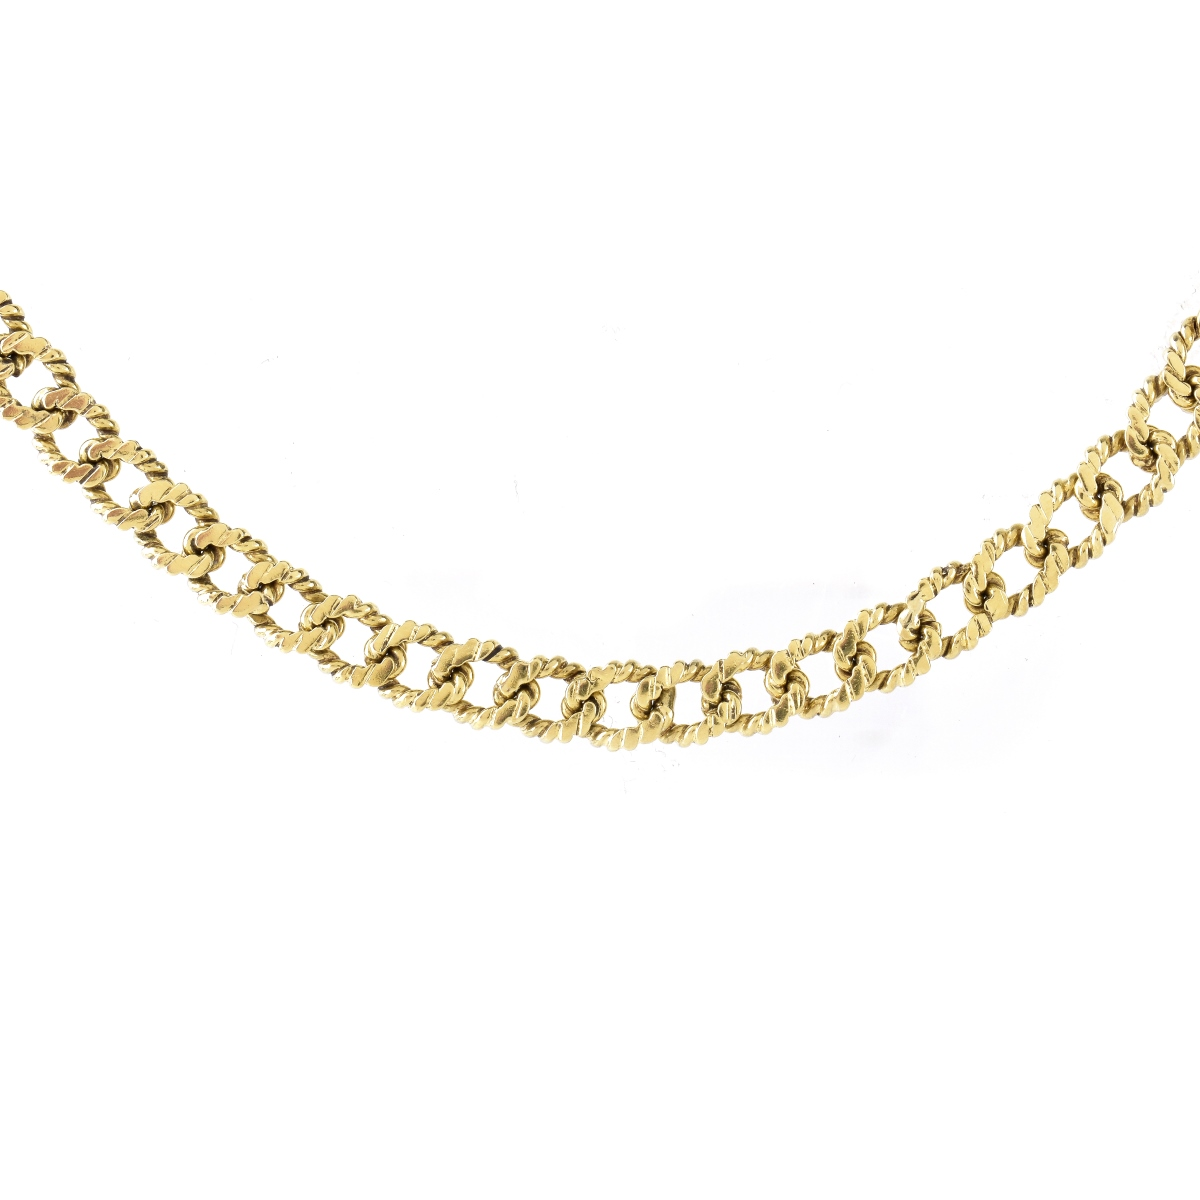 "25"" Long 14K Gold Necklace"